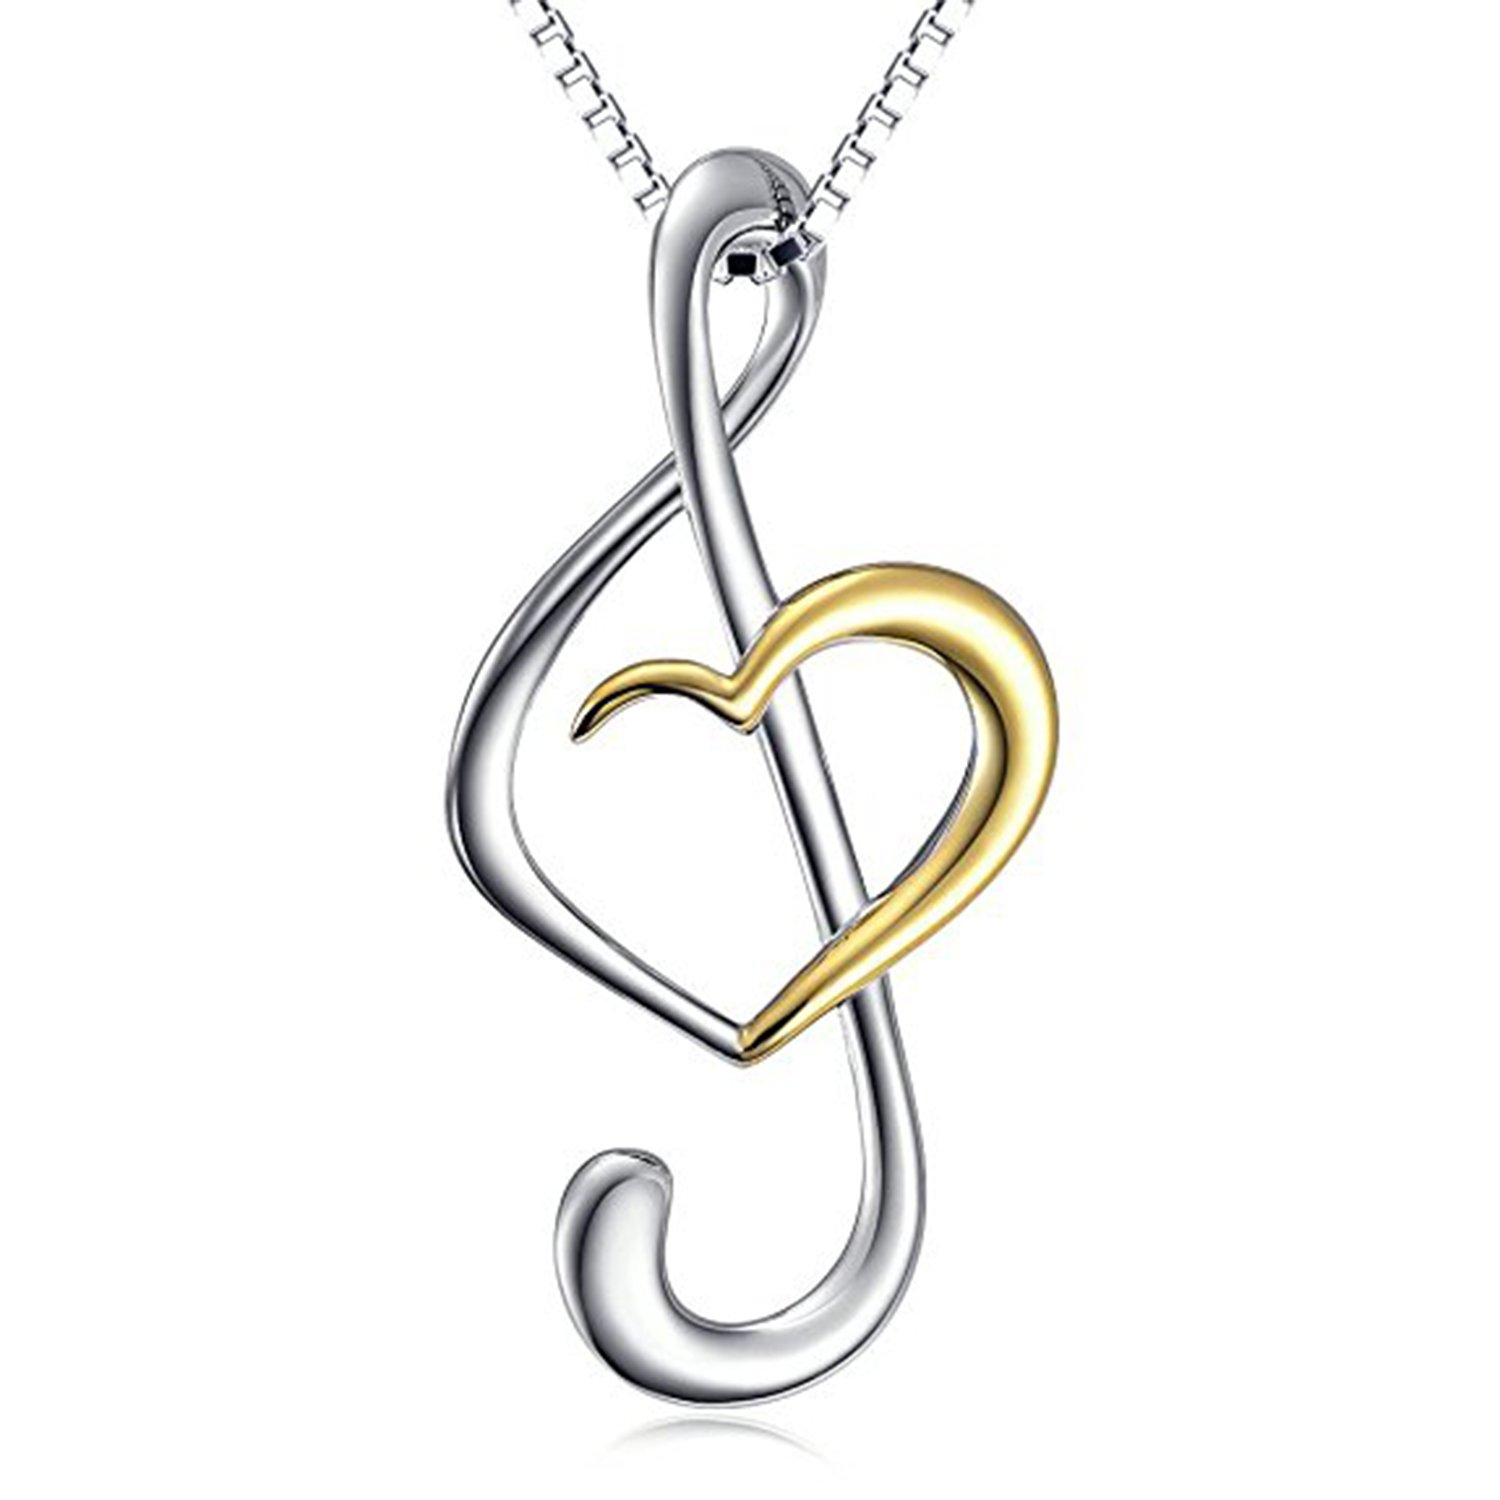 Ashley Jewels Simulated Diamond Studded Fashion Charm Musical Sign Pendant Necklace in 14K White Gold Plated With Box Chain